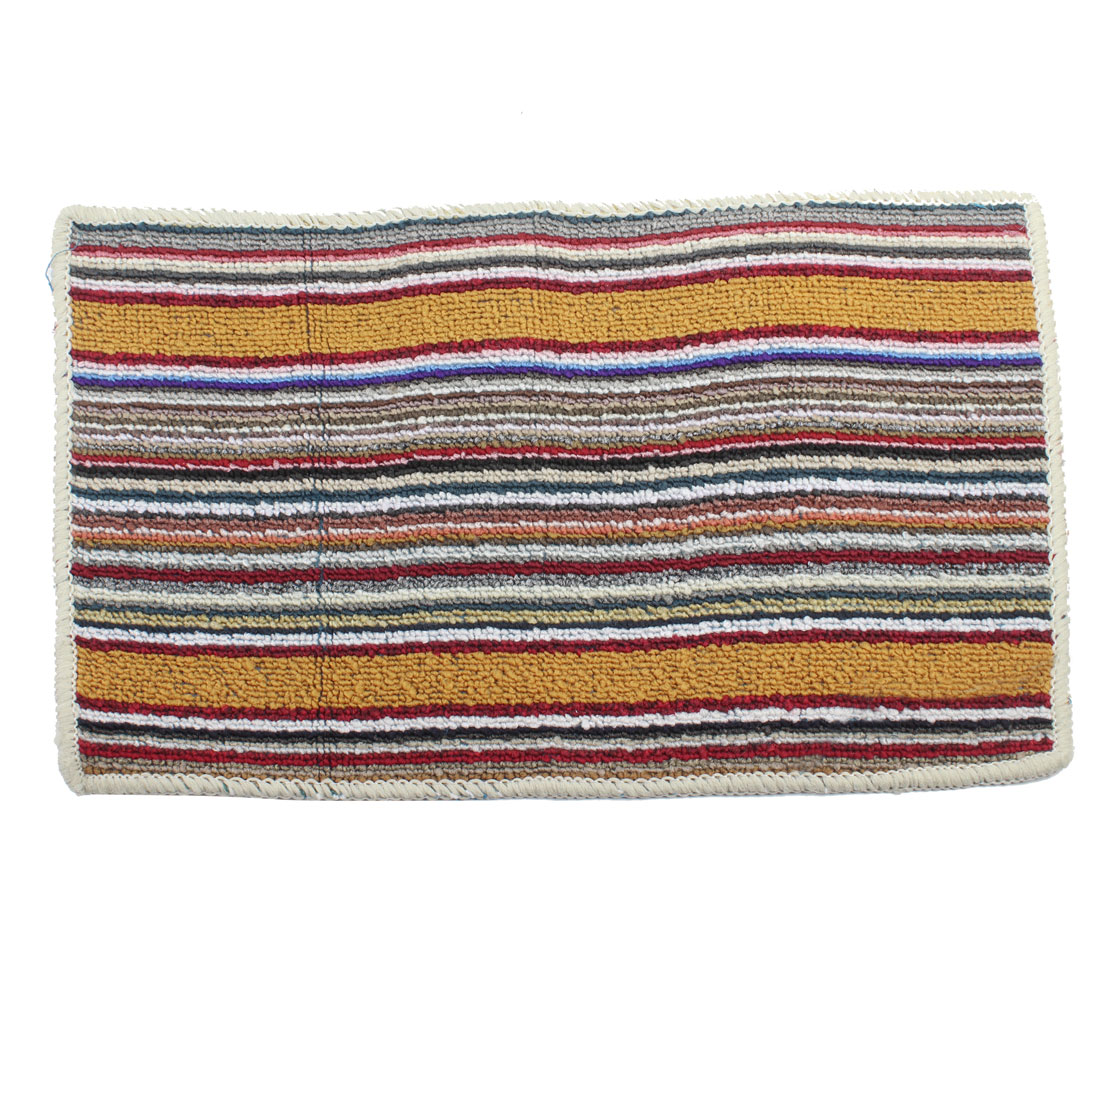 Family Multicolored Rectangle Striped Pattern Soft Carpet Area Rug 53cm x 33cm